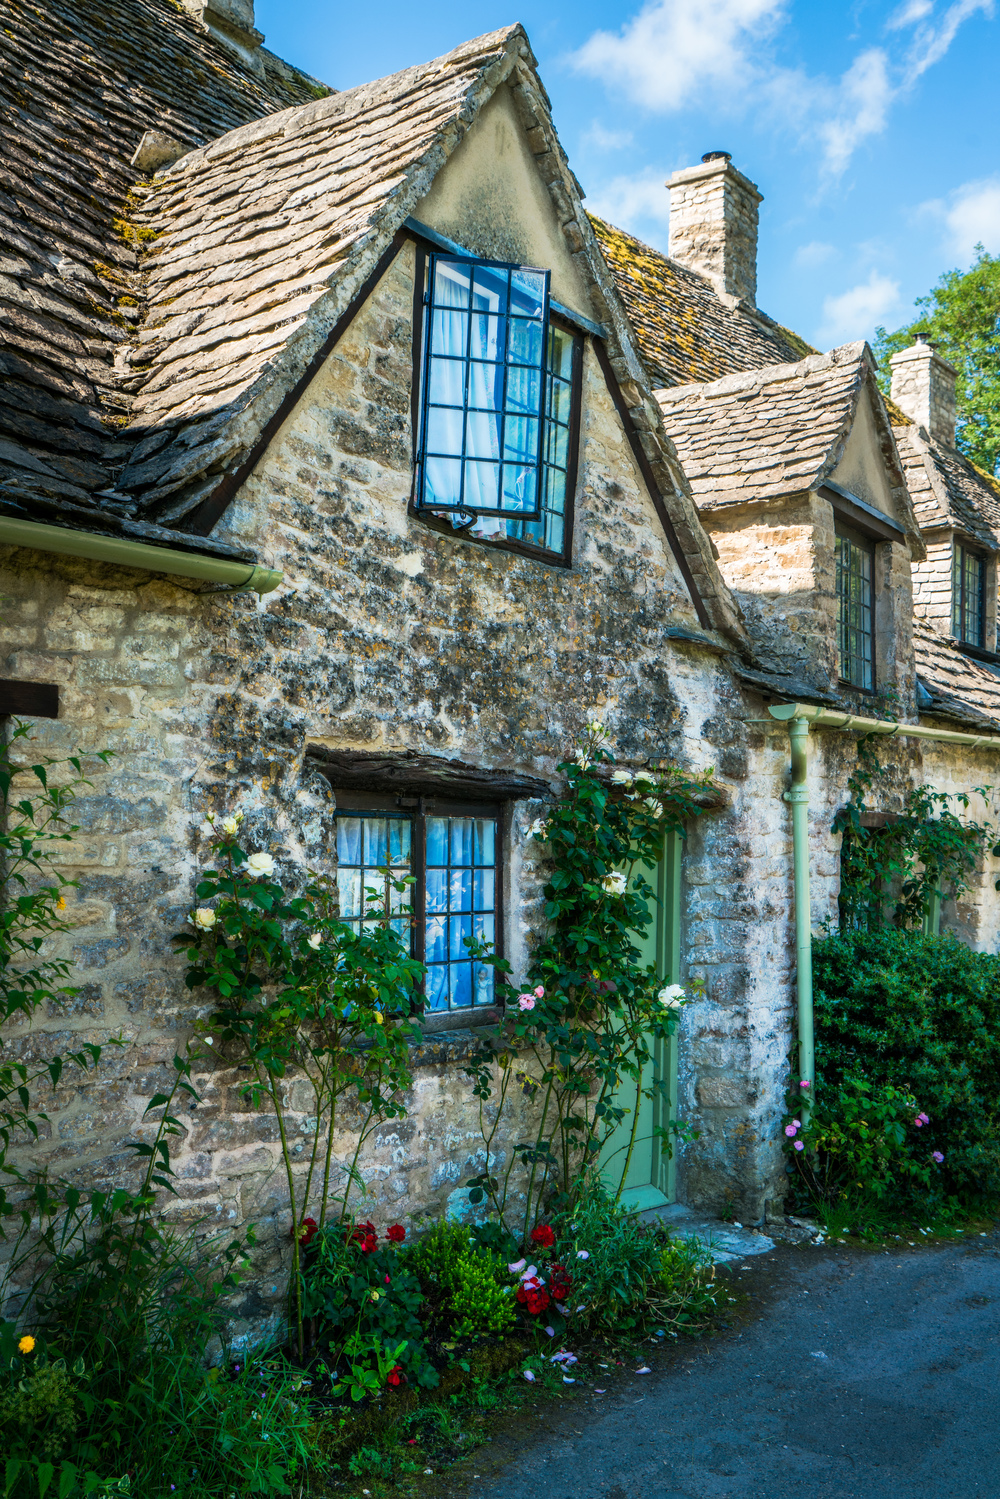 Arlington Row, Bibury, Cotswolds AONB, England, UK. Sony A7rII, Sony 24-70mm f/4 at 34mm, ISO 250, f/8, 1/125th. Edited in Lightroom and Photoshop.